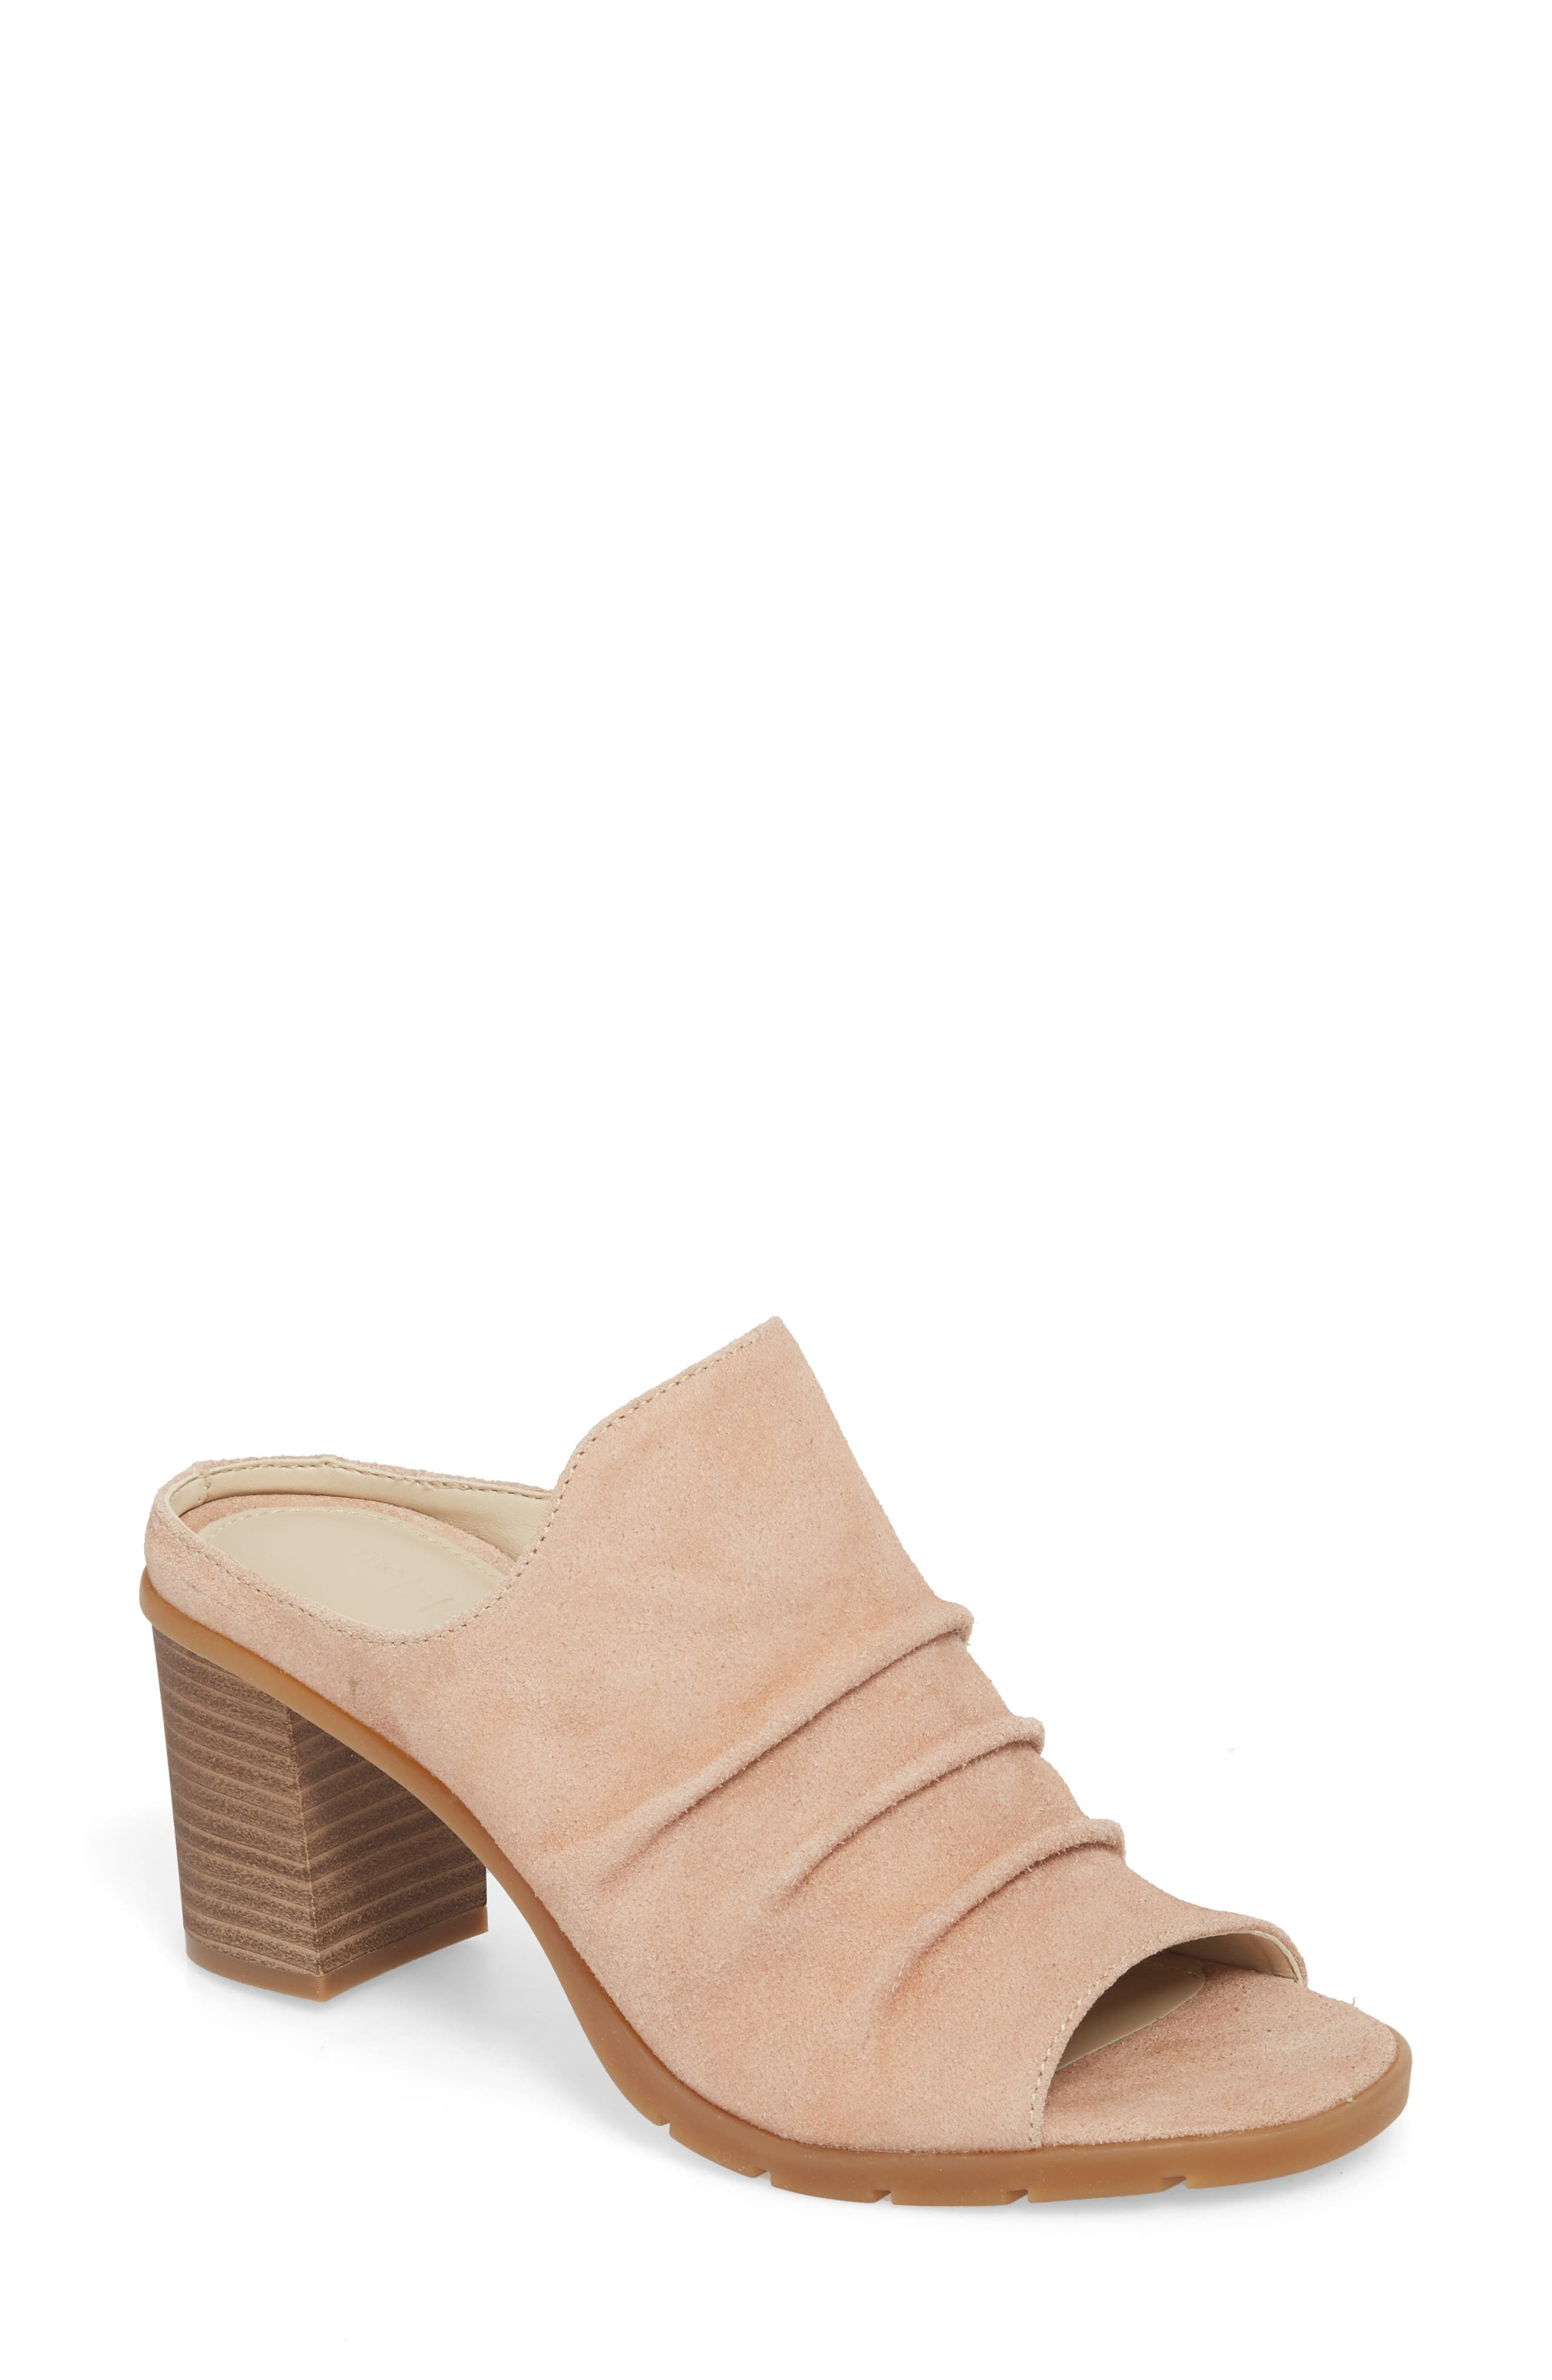 Aim to Pleat Mule,                             Main thumbnail 1, color,                             ROSE GOLD LEATHER